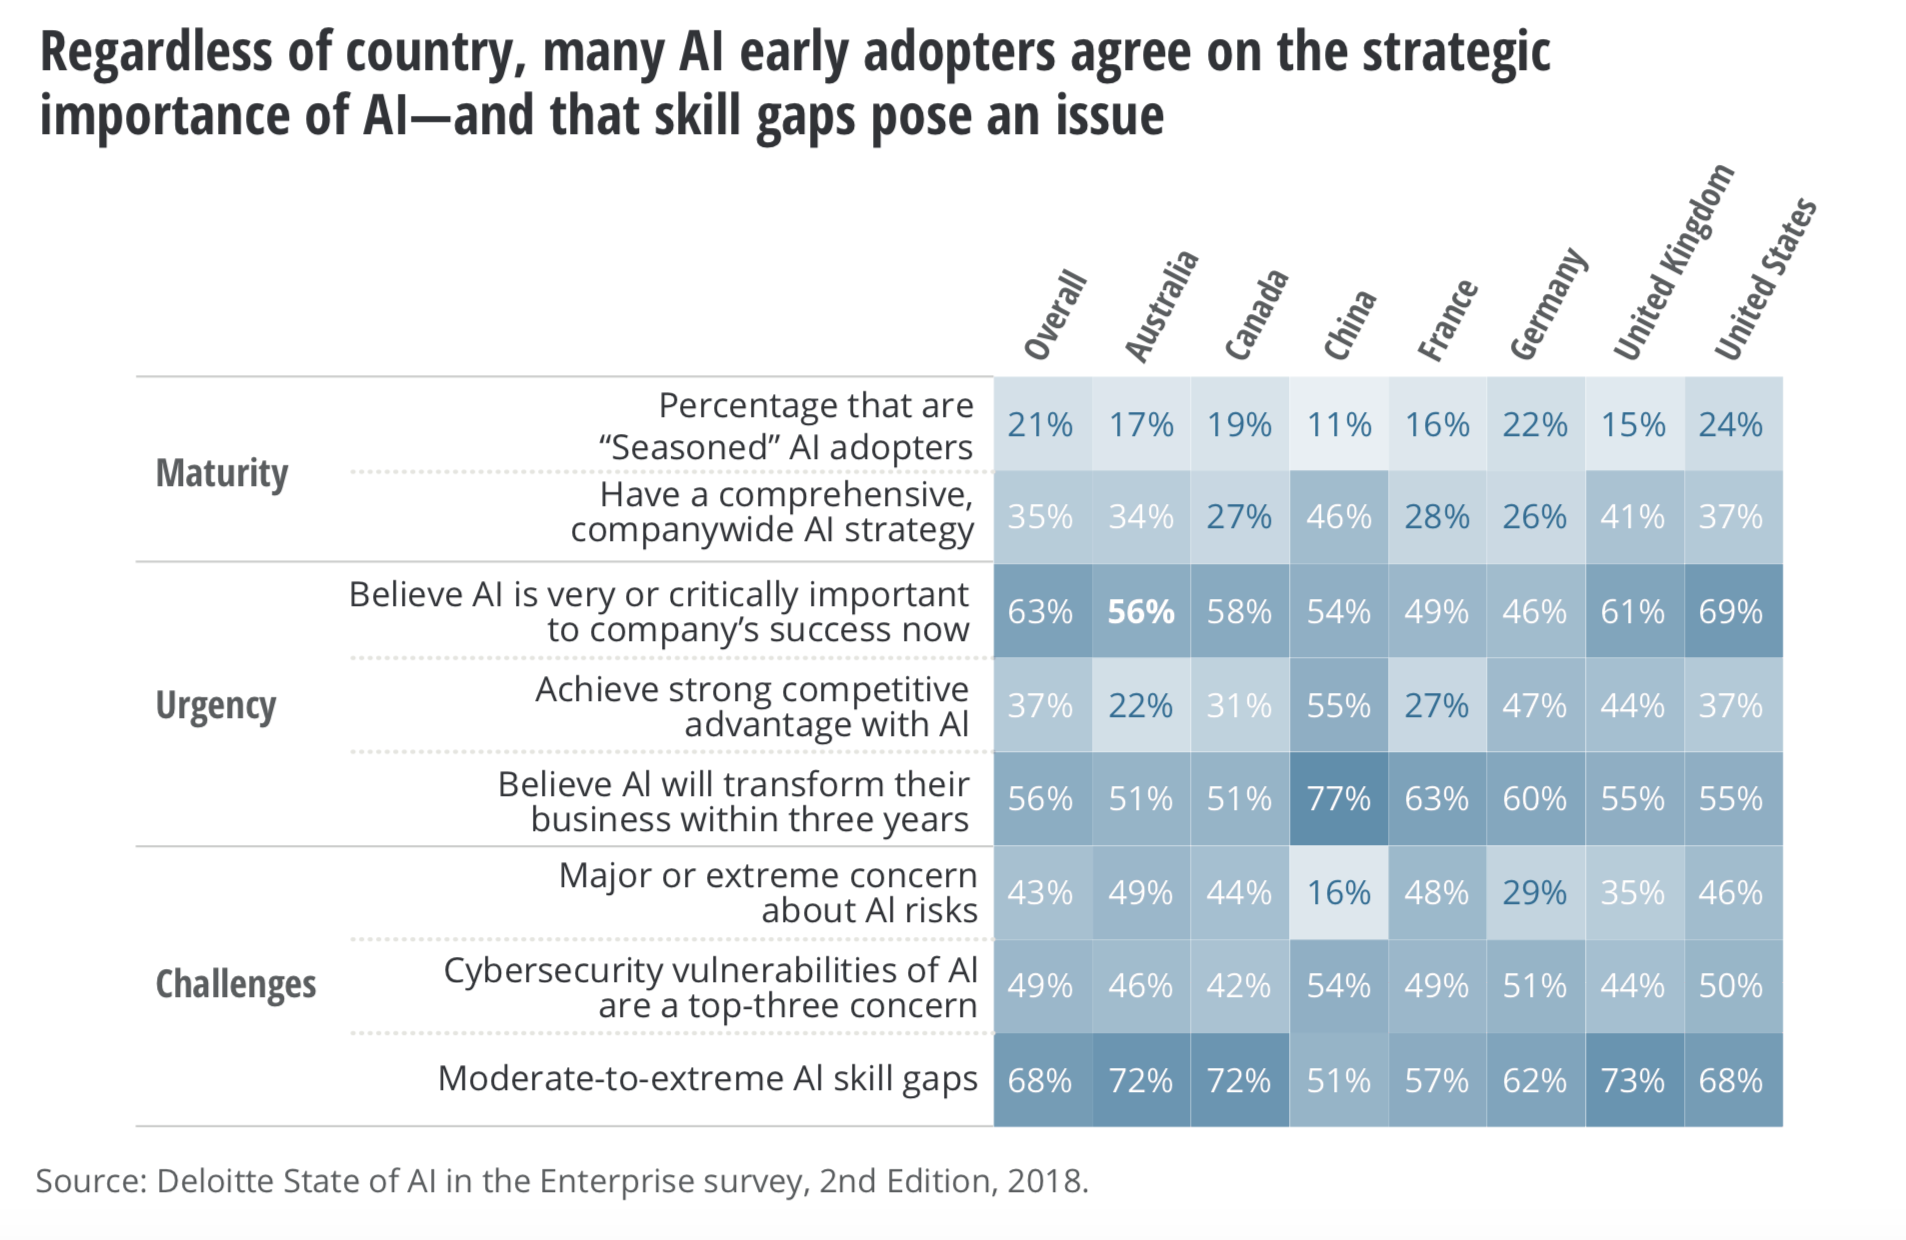 AI early adopters agree on the strategic importance of AI